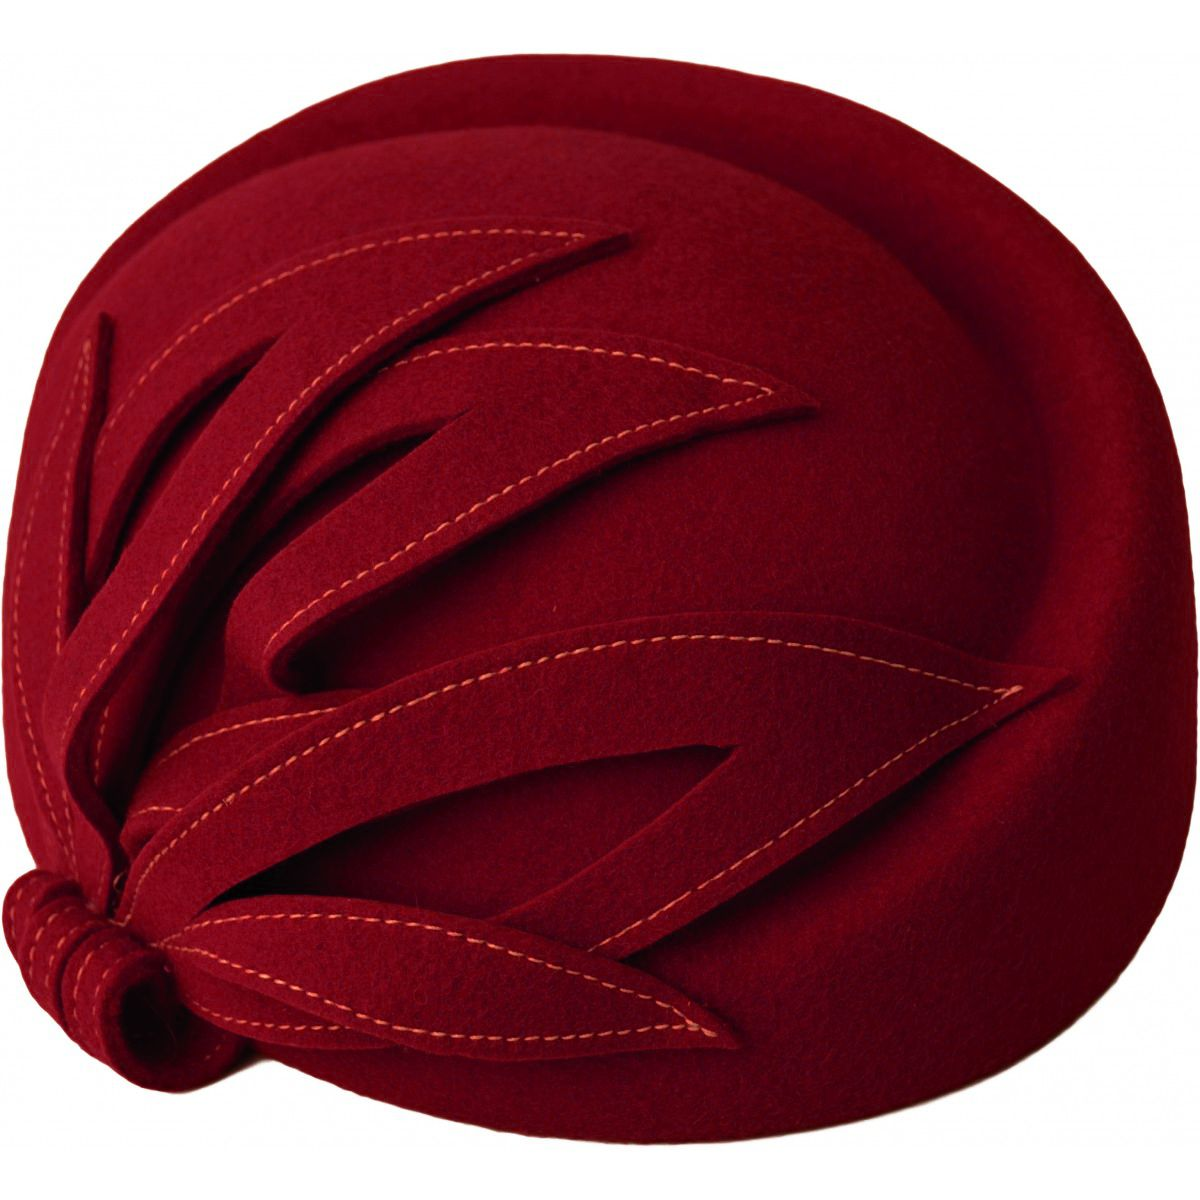 eae2398r_chapeau-retro-pin-up-40-s-50-s-glam-chic-daisy-rouge